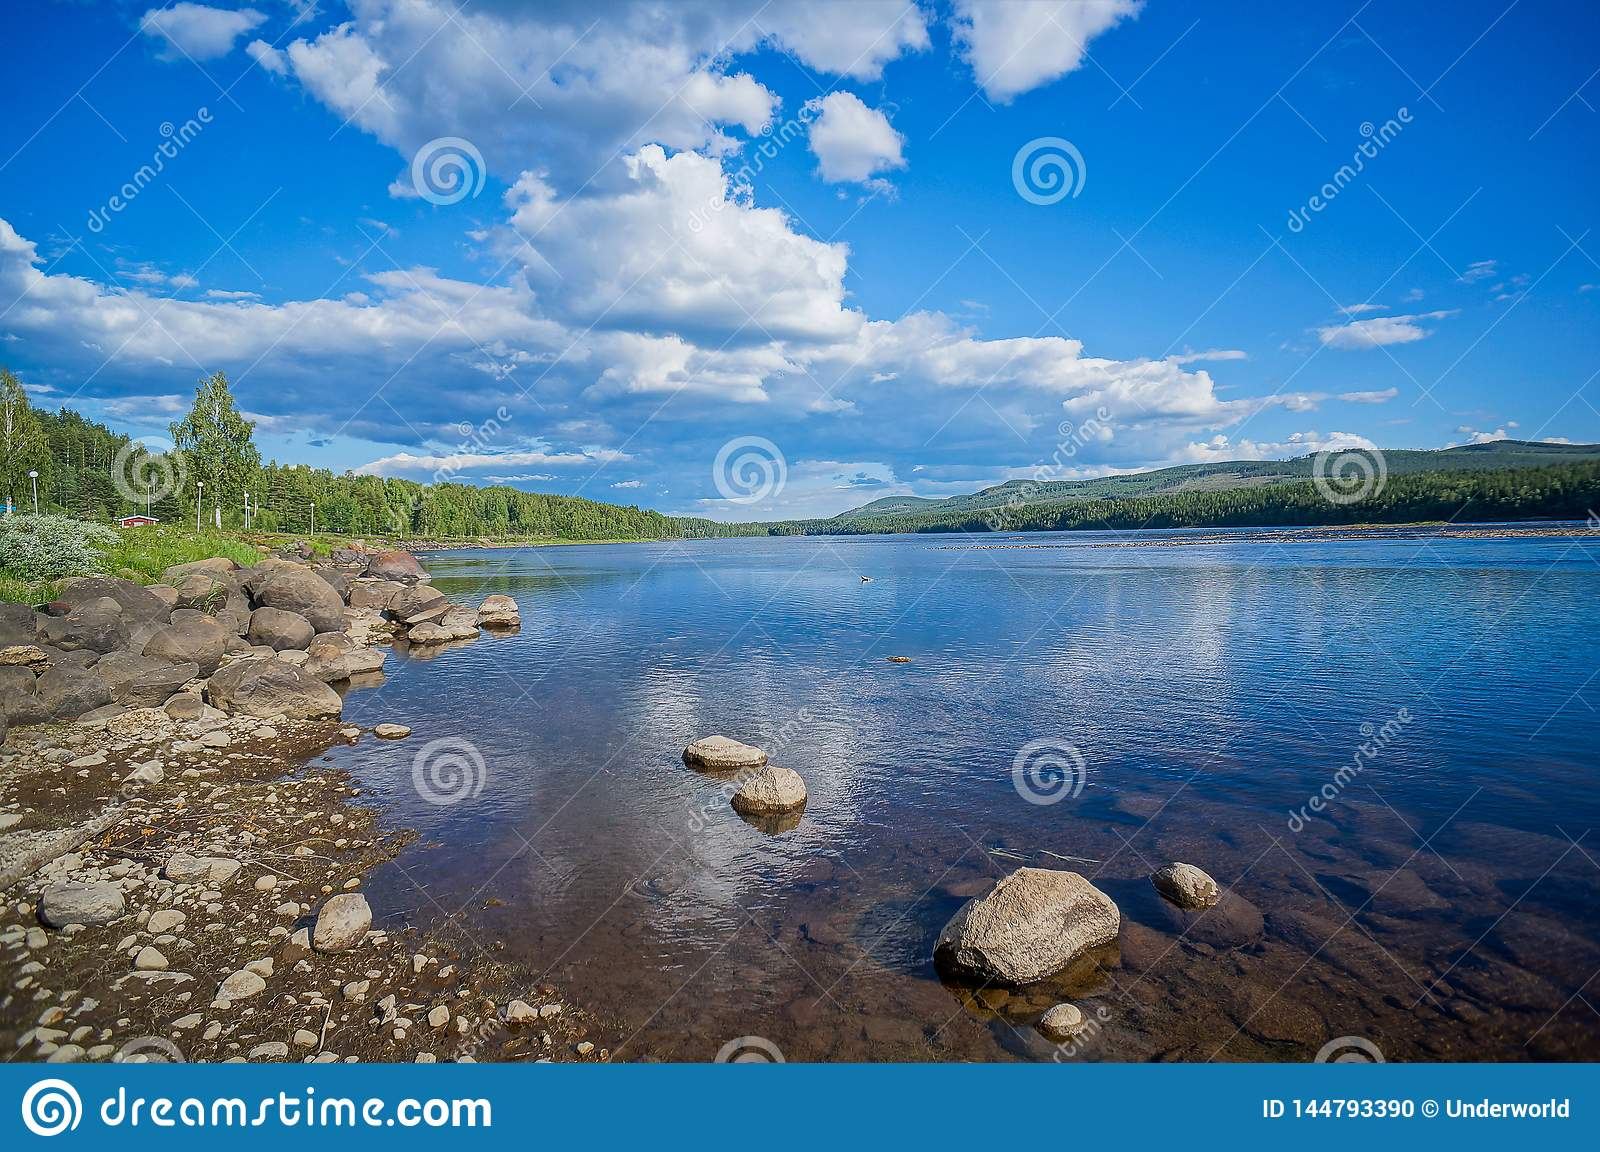 Landscape With River, Beautiful Photo Digital Picture, In